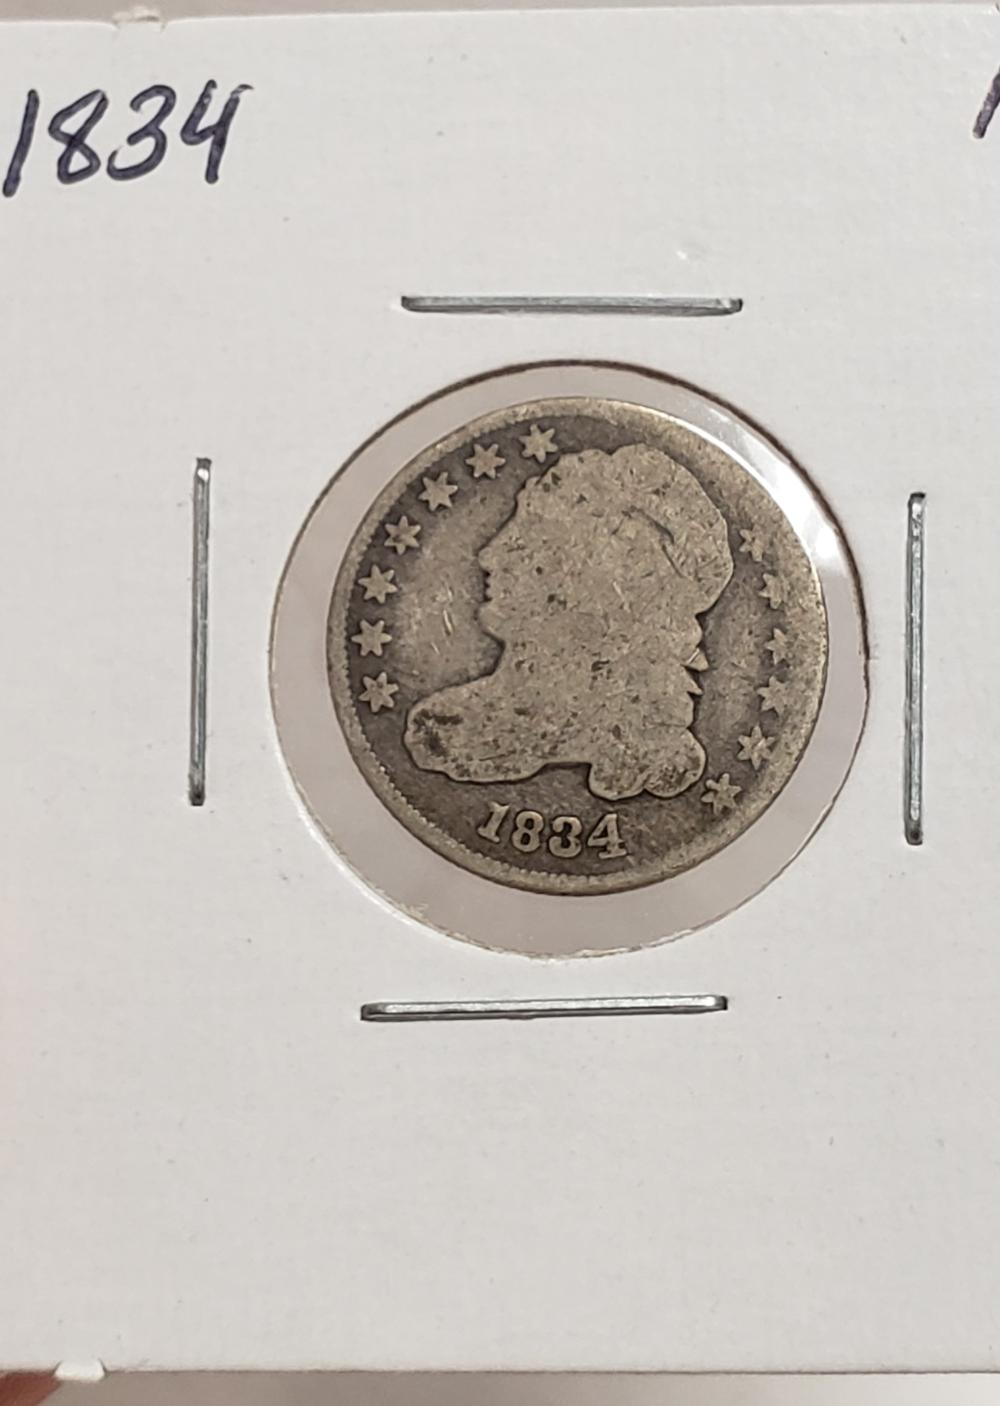 1834 Bust Dime 10 cents silver